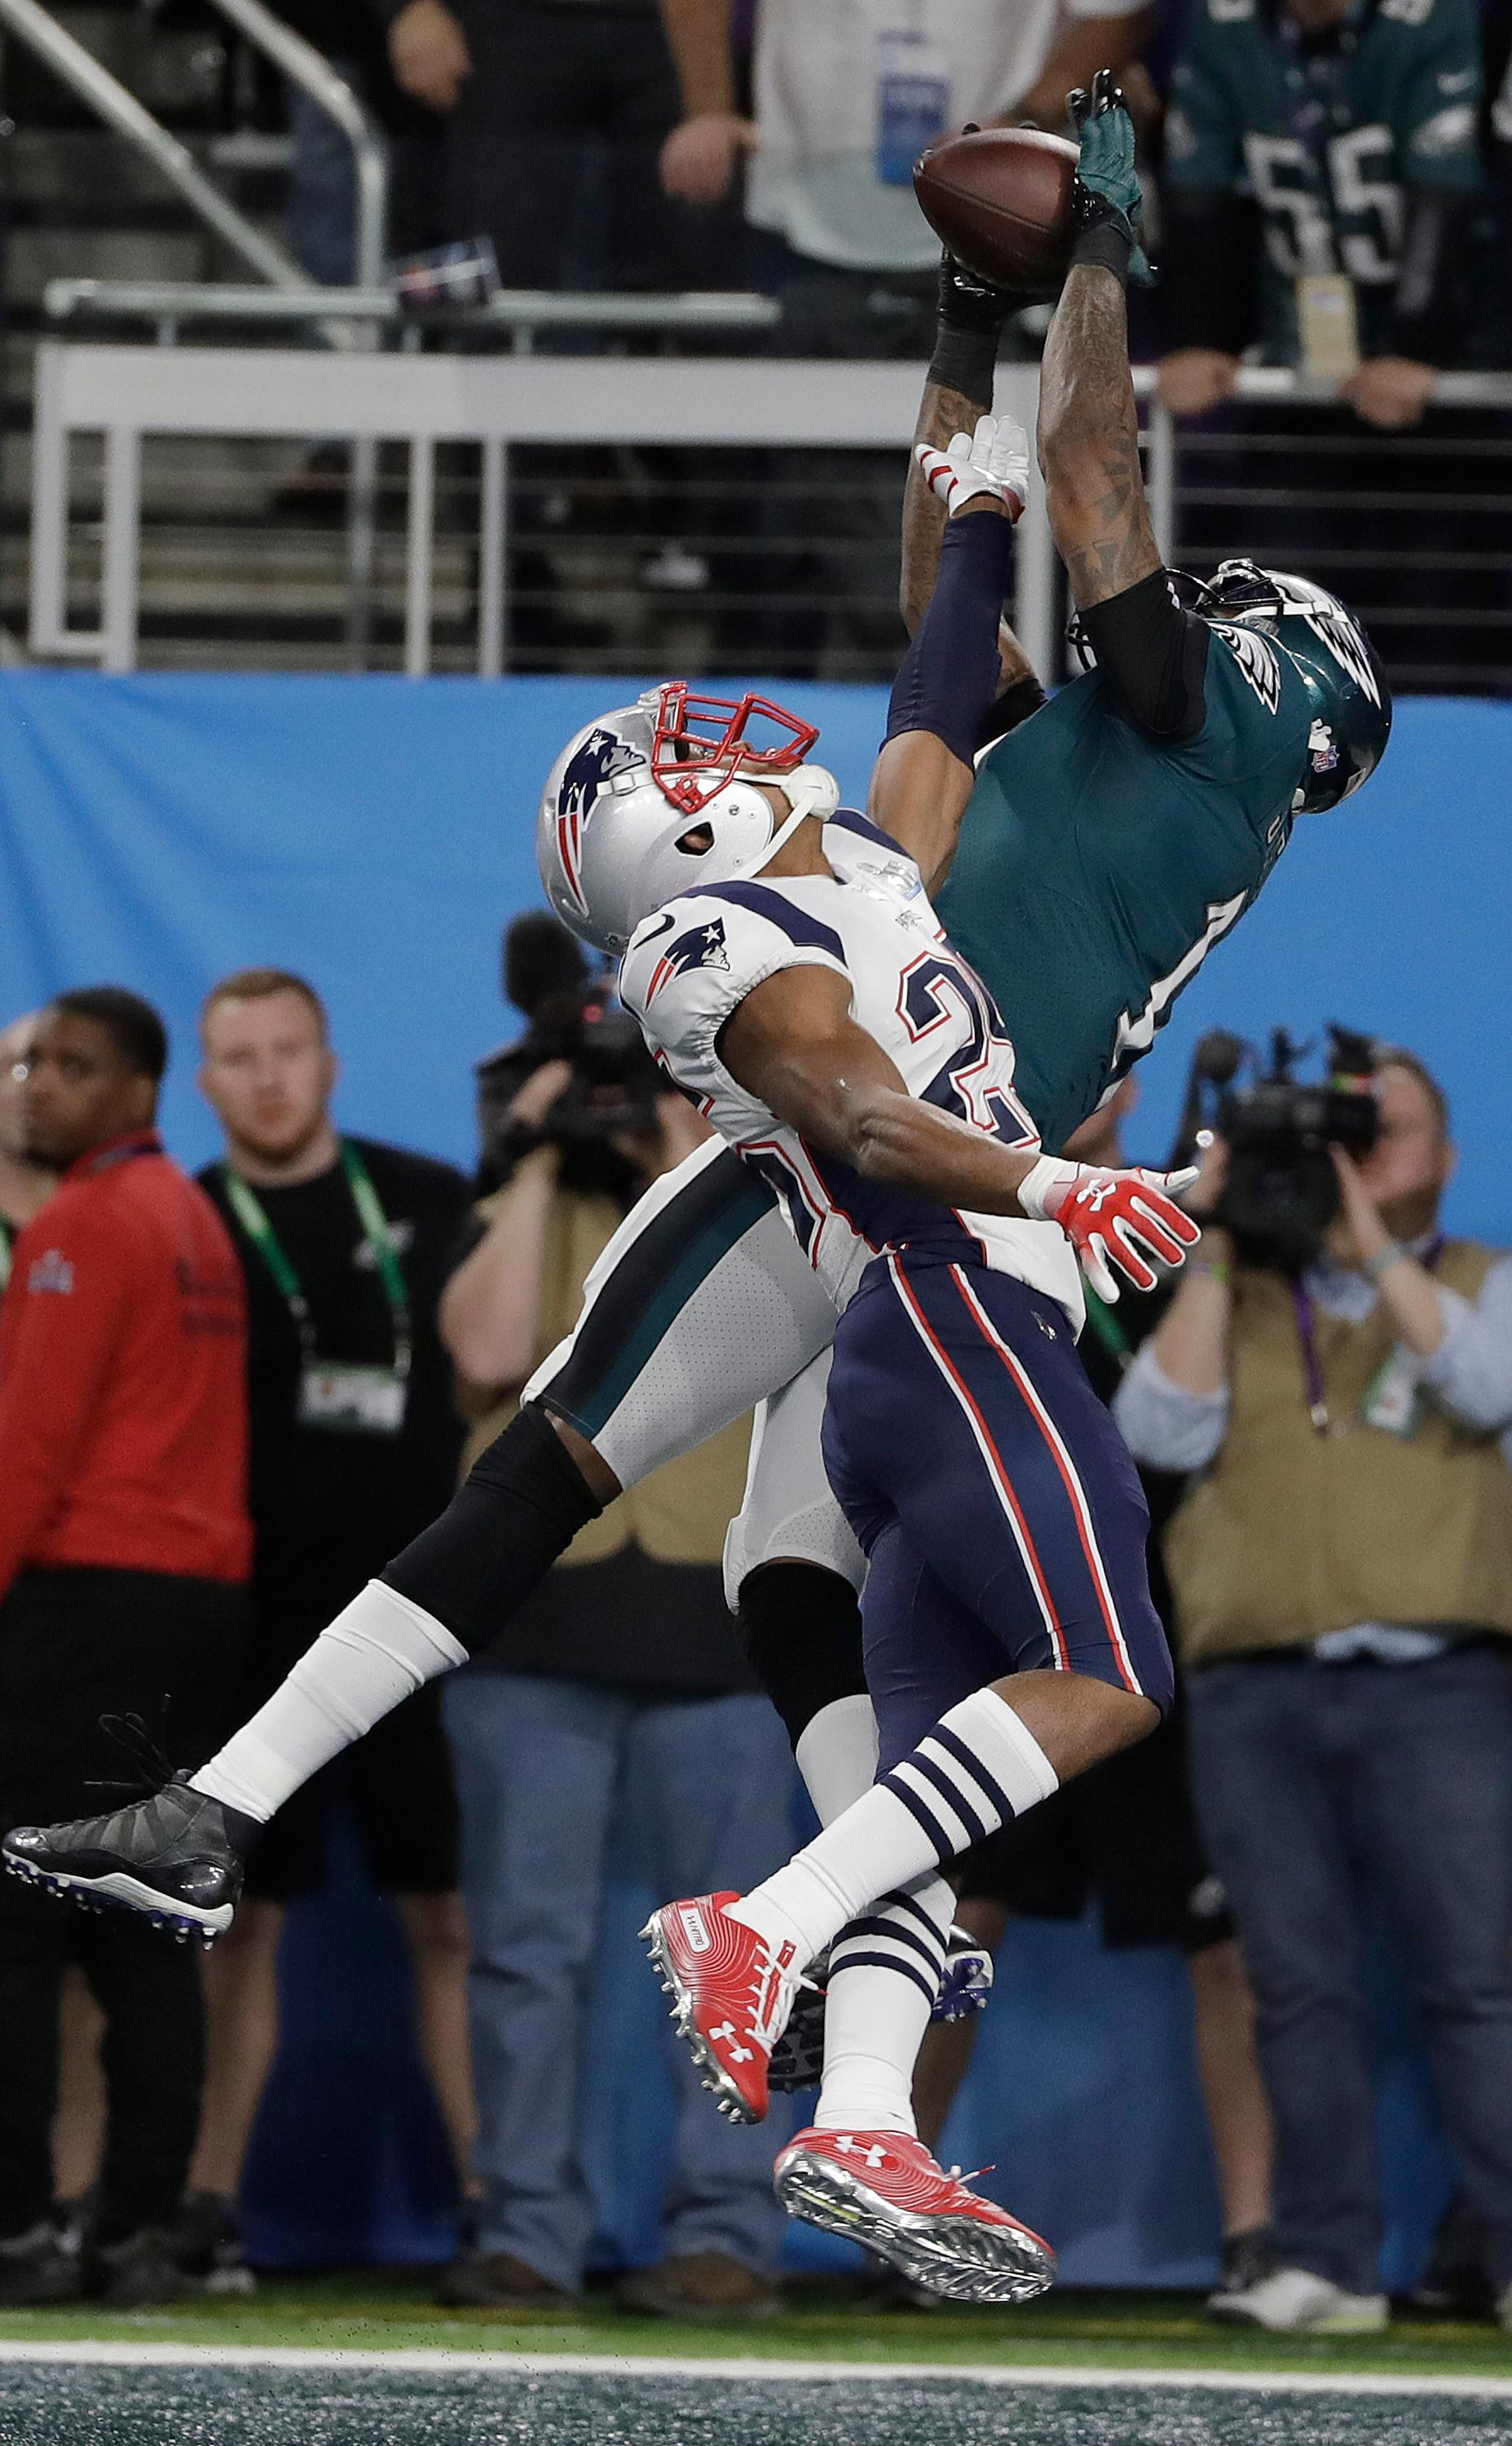 Philadelphia Eagles' Alshon Jeffery, right, catches a touchdown pass over New England Patriots' Eric Rowe during the first half of the NFL Super Bowl 52 football game Sunday, Feb. 4, 2018, in Minneapolis. (AP Photo/Matt Slocum)